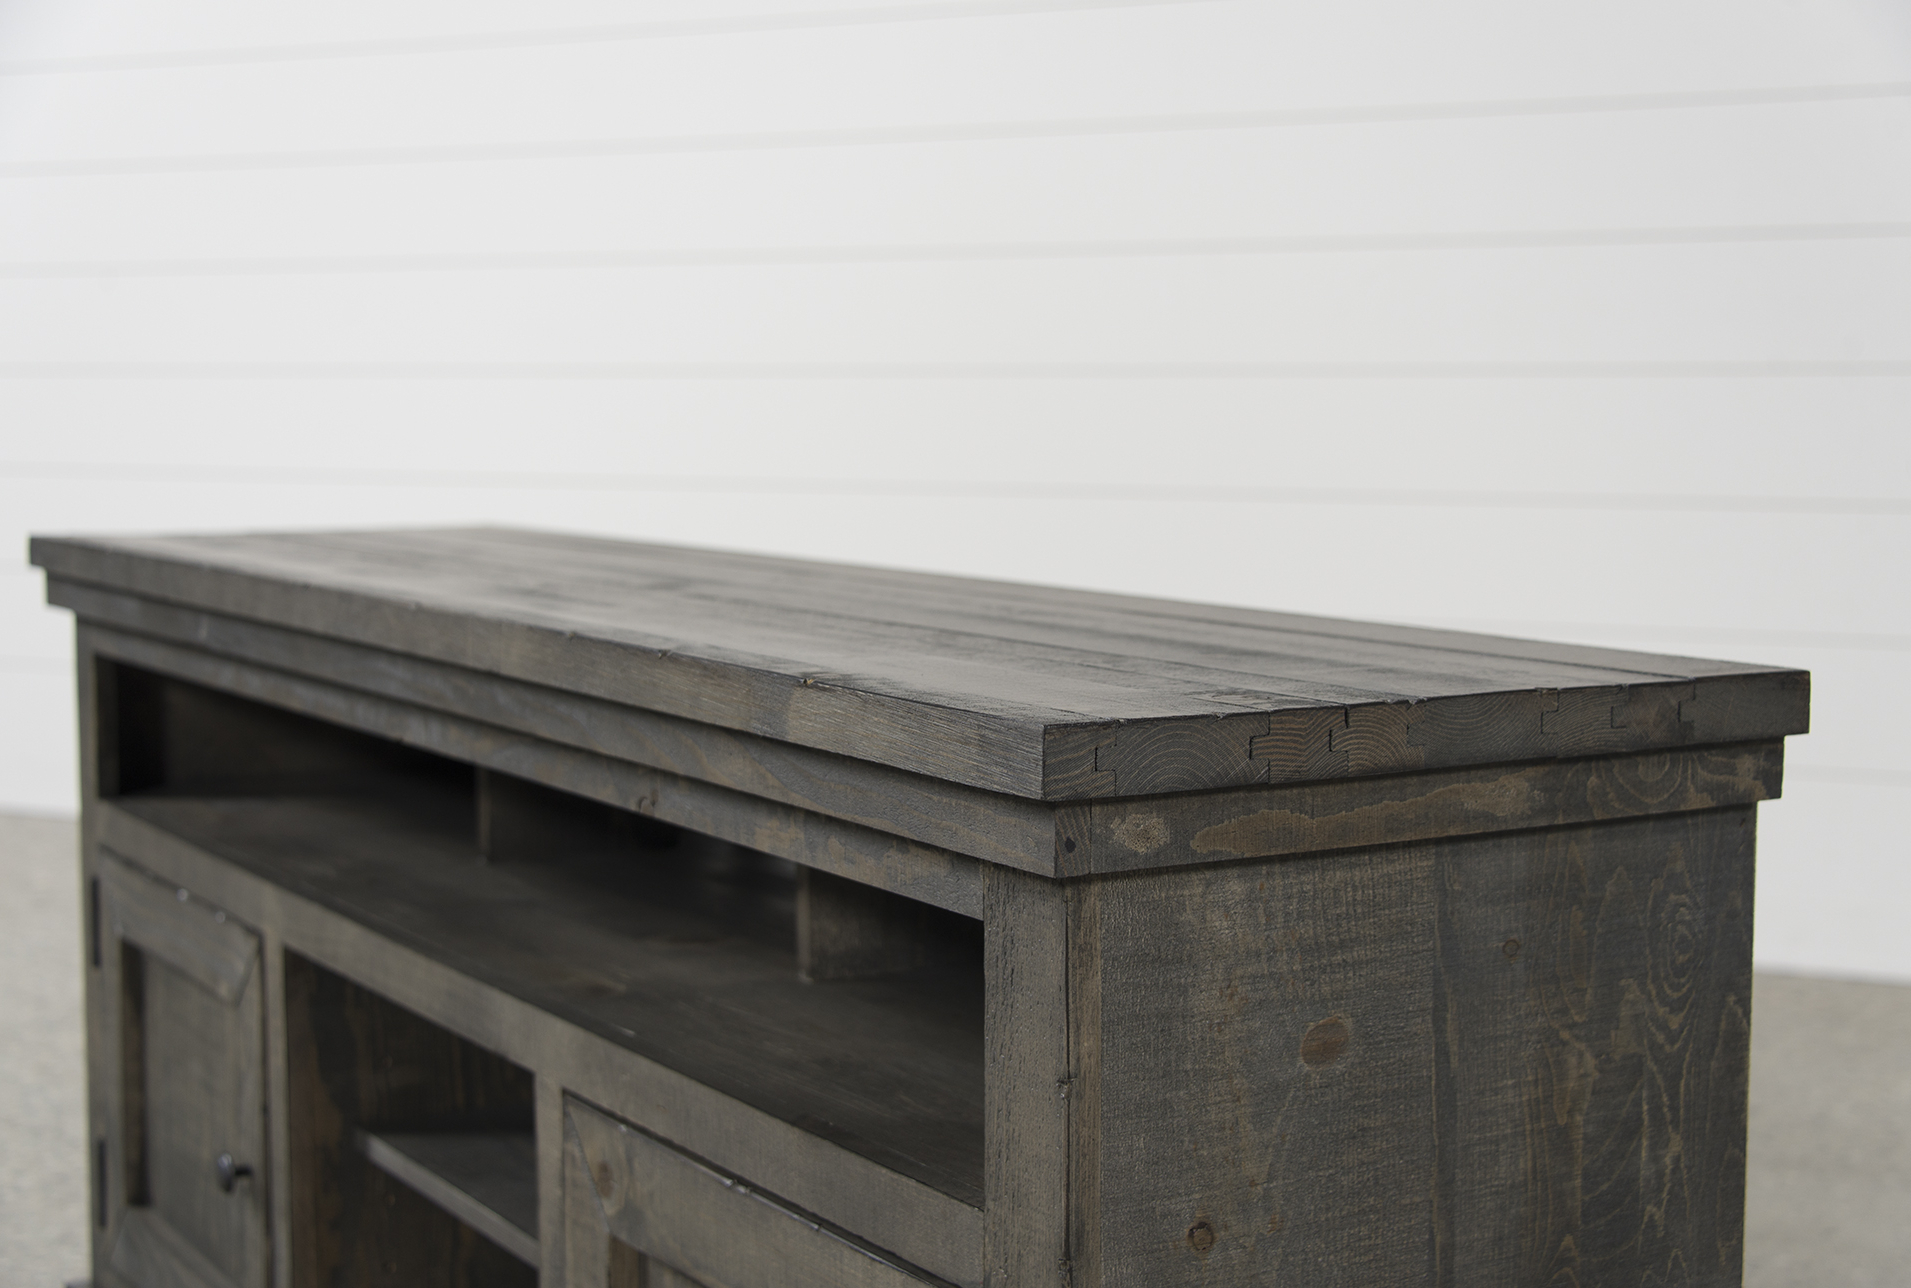 Sinclair Grey 64 Inch Tv Stand | Tv Stands, Tvs And Gray Intended For Sinclair Grey 64 Inch Tv Stands (View 6 of 20)